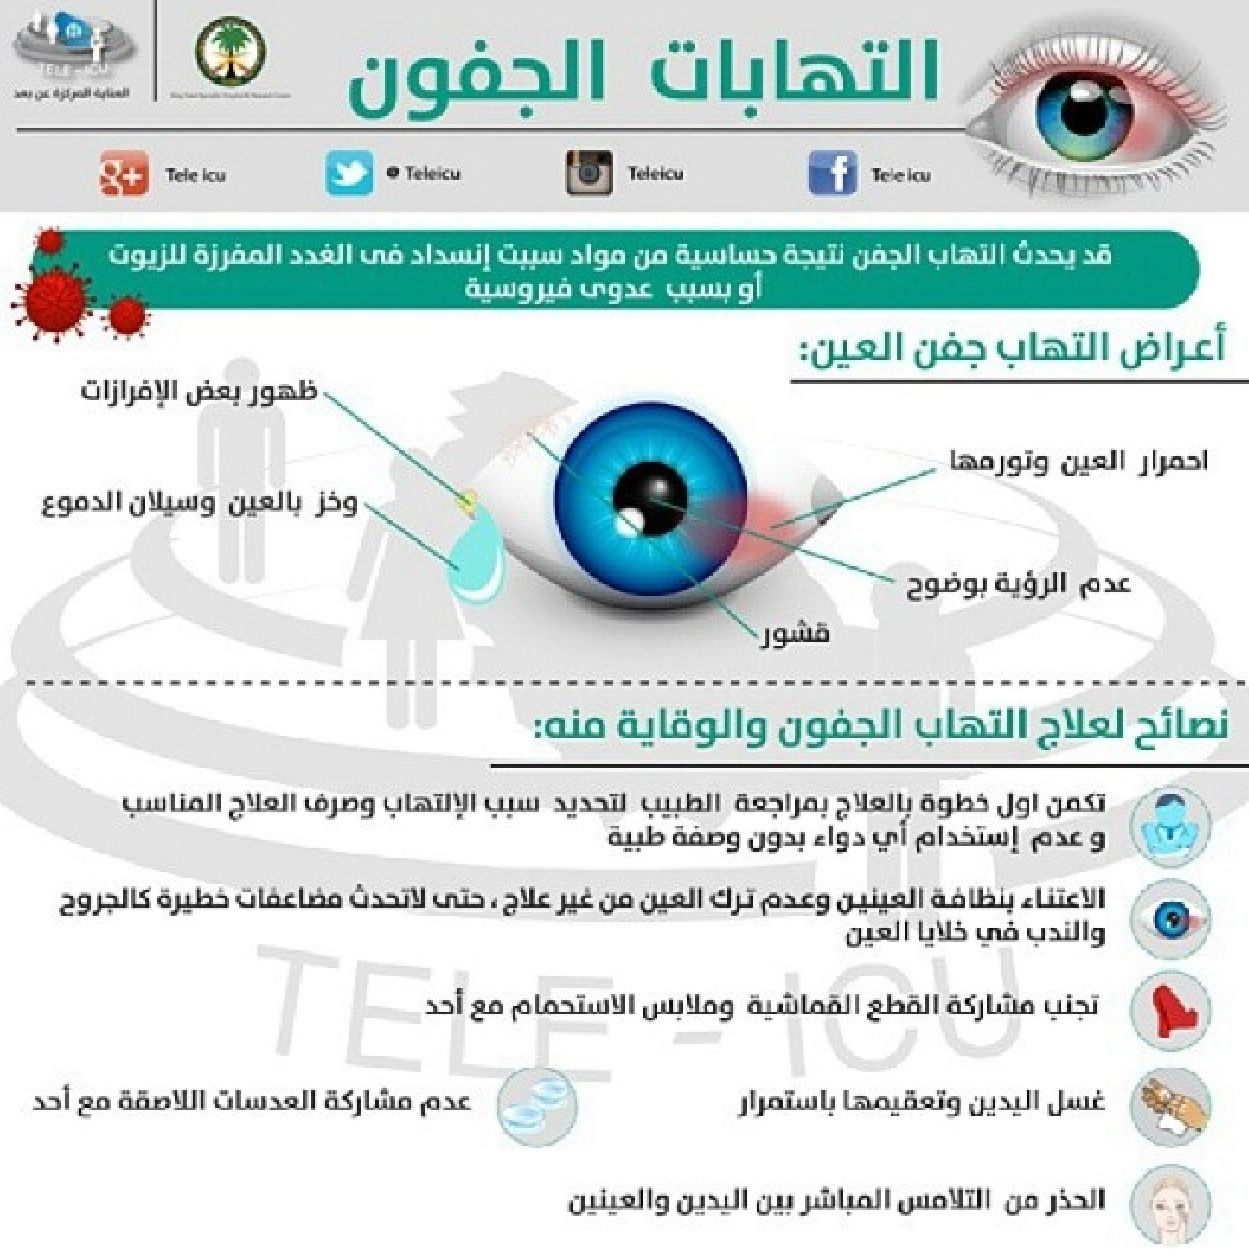 Pin By Nadih Koko On Health Awareness توعية صحية Body Hacks Health Health Care